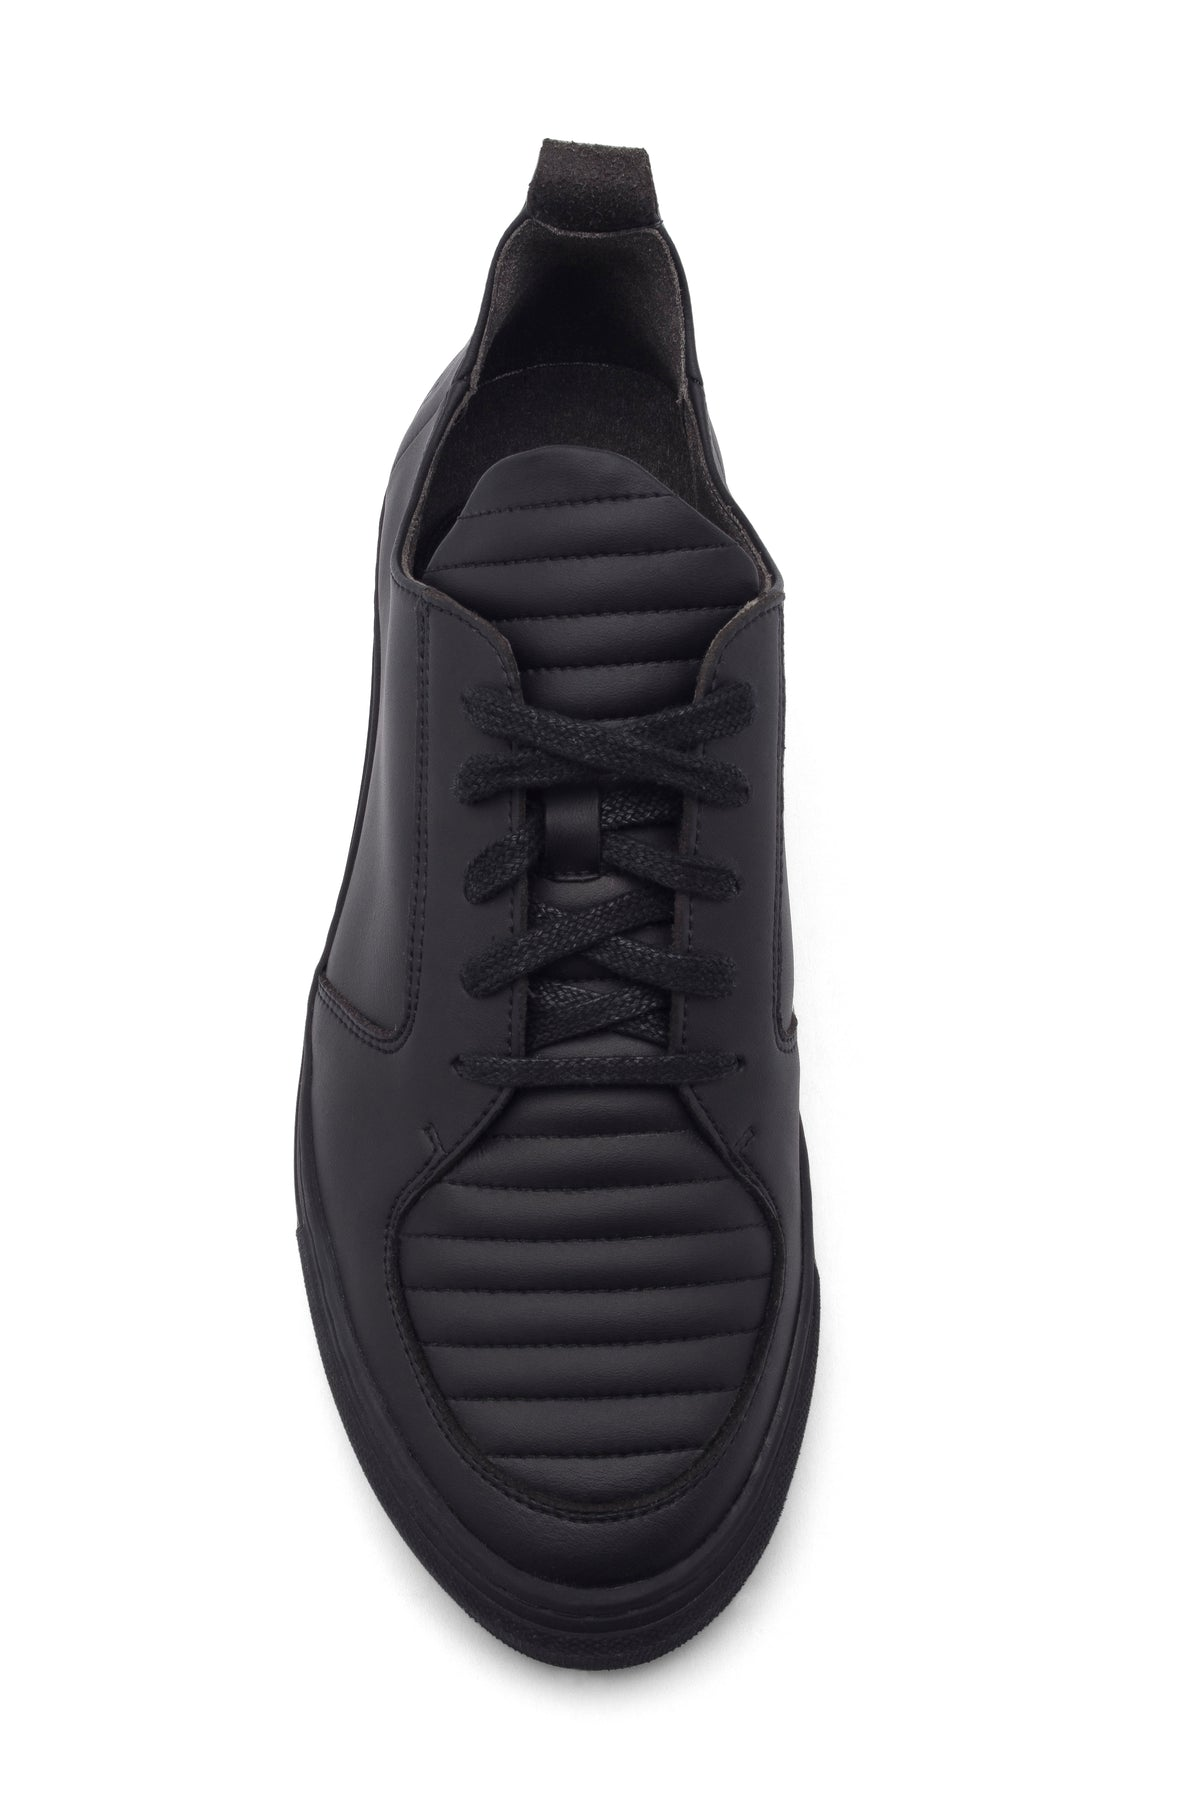 Argan Low All Black